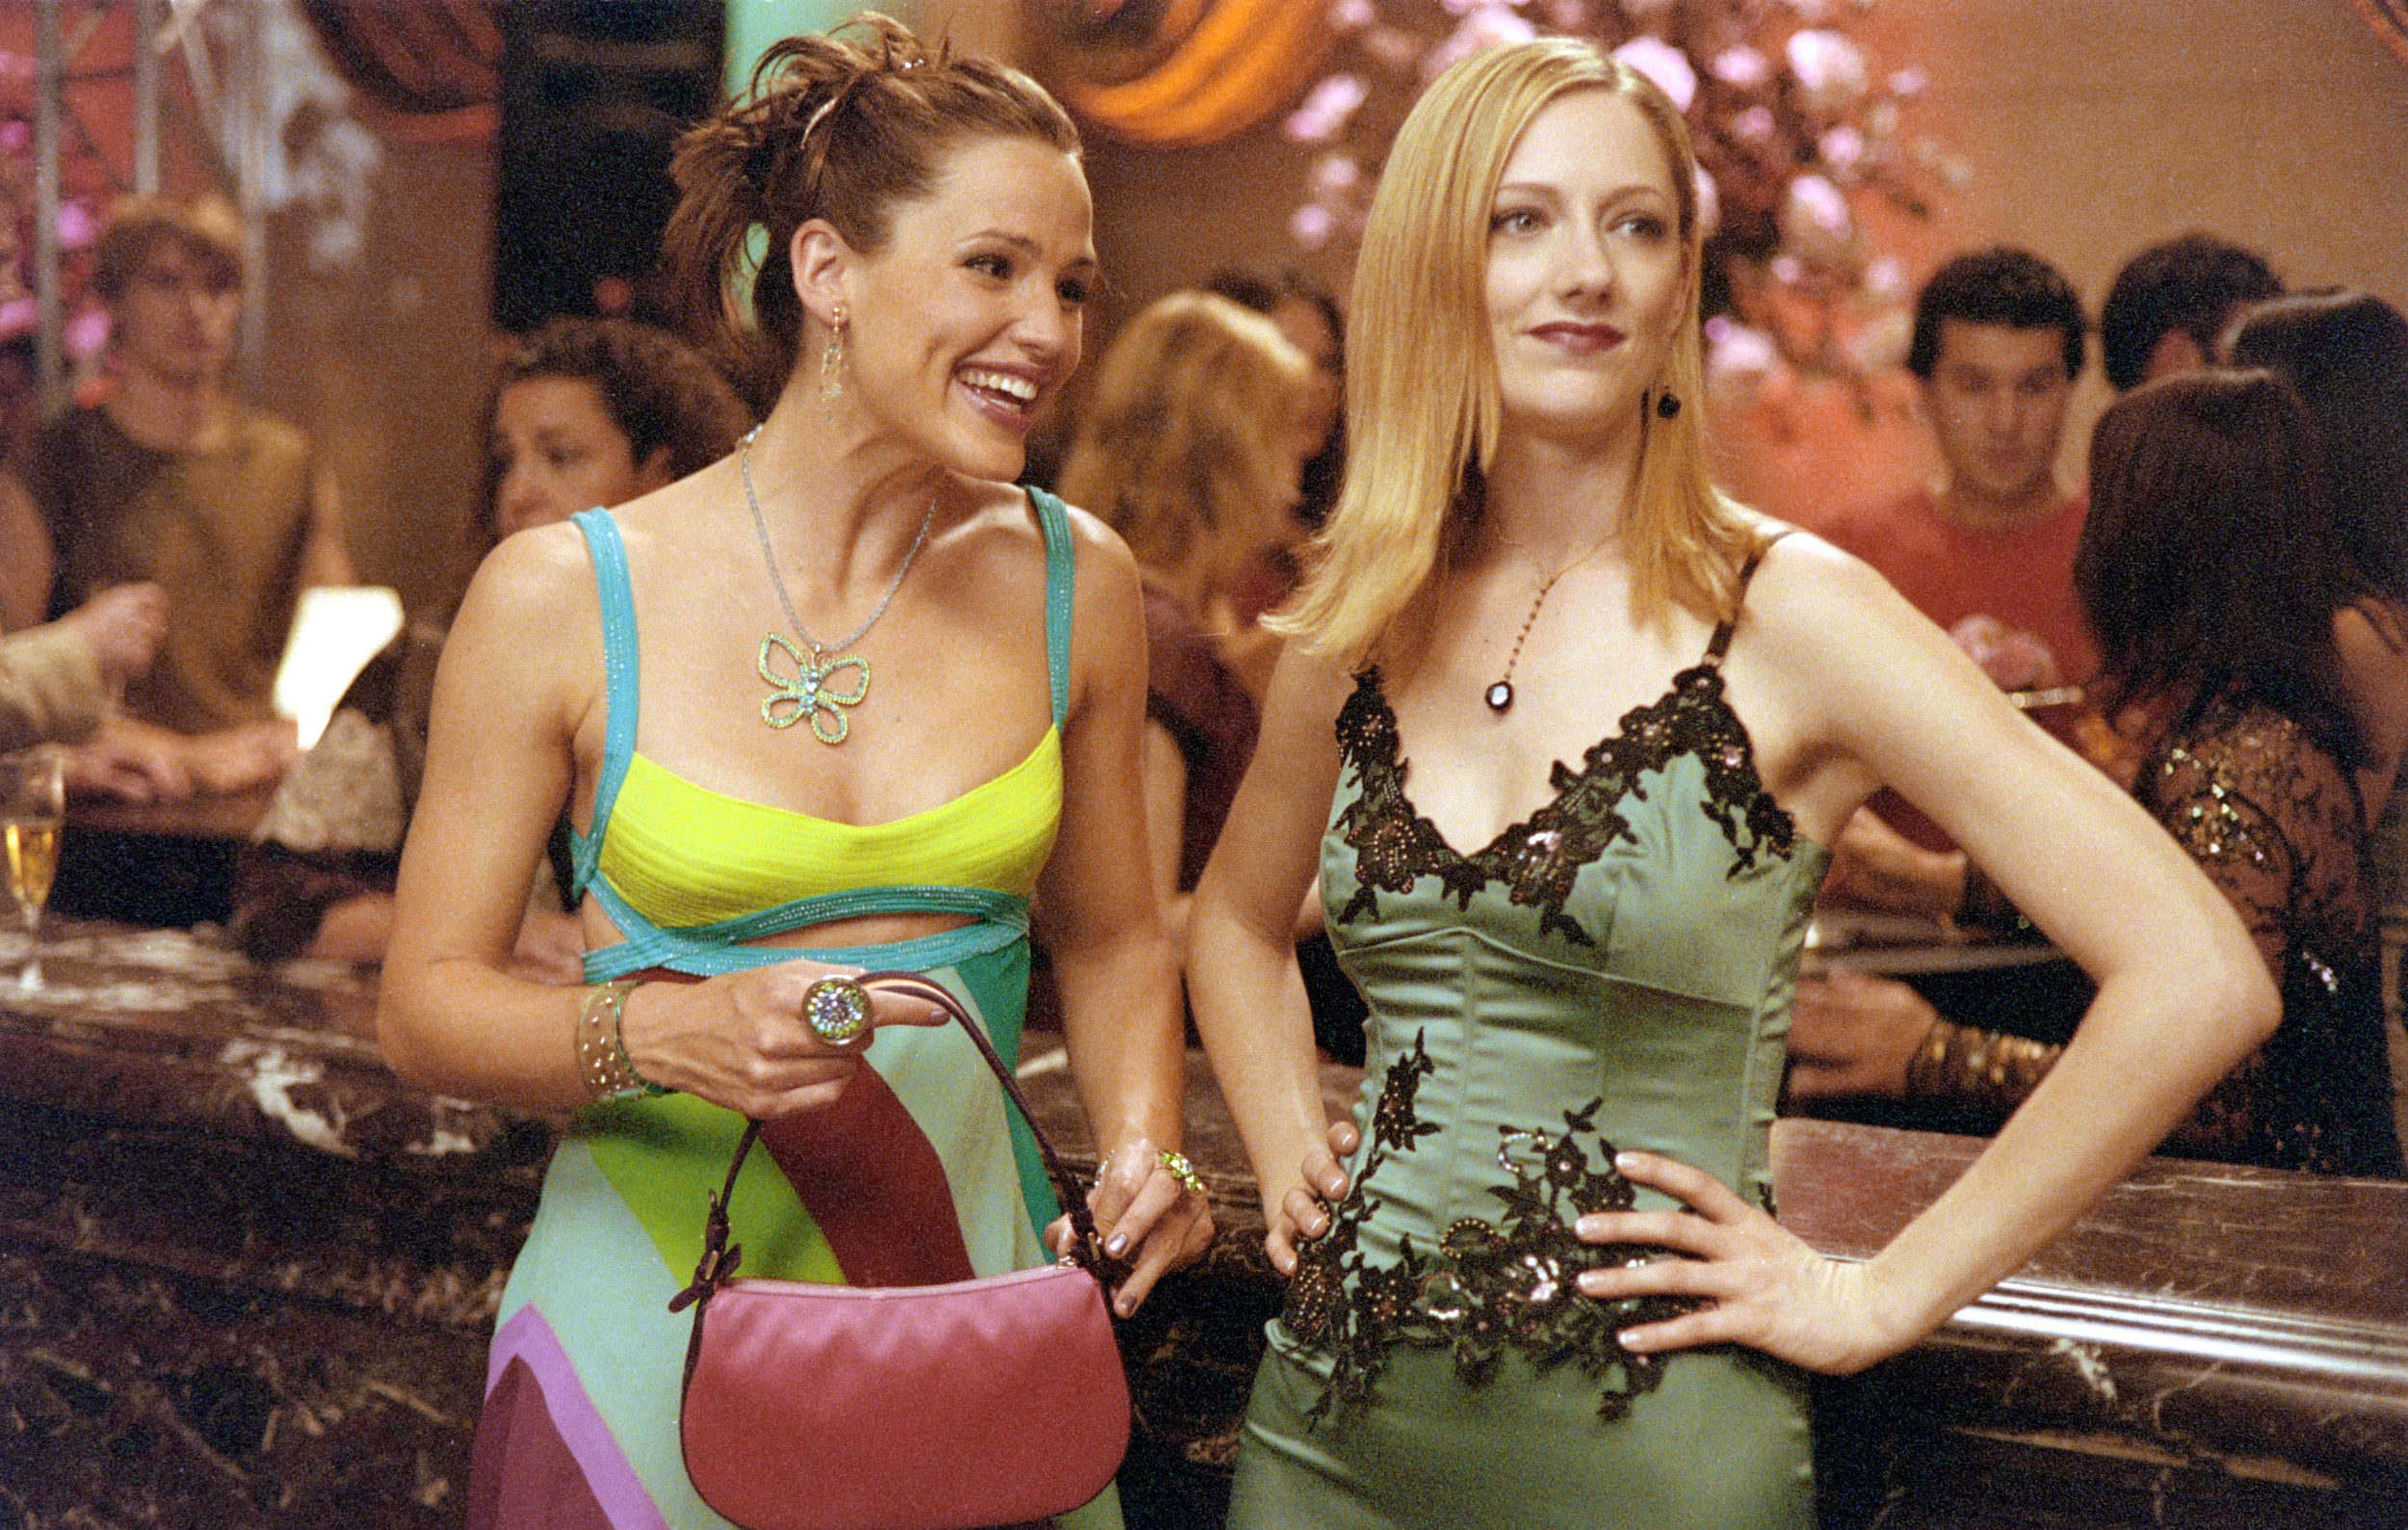 That Wedding Dress Almost Didn't Happen, and Other Secrets From 13 Going on 30's Costume Designer